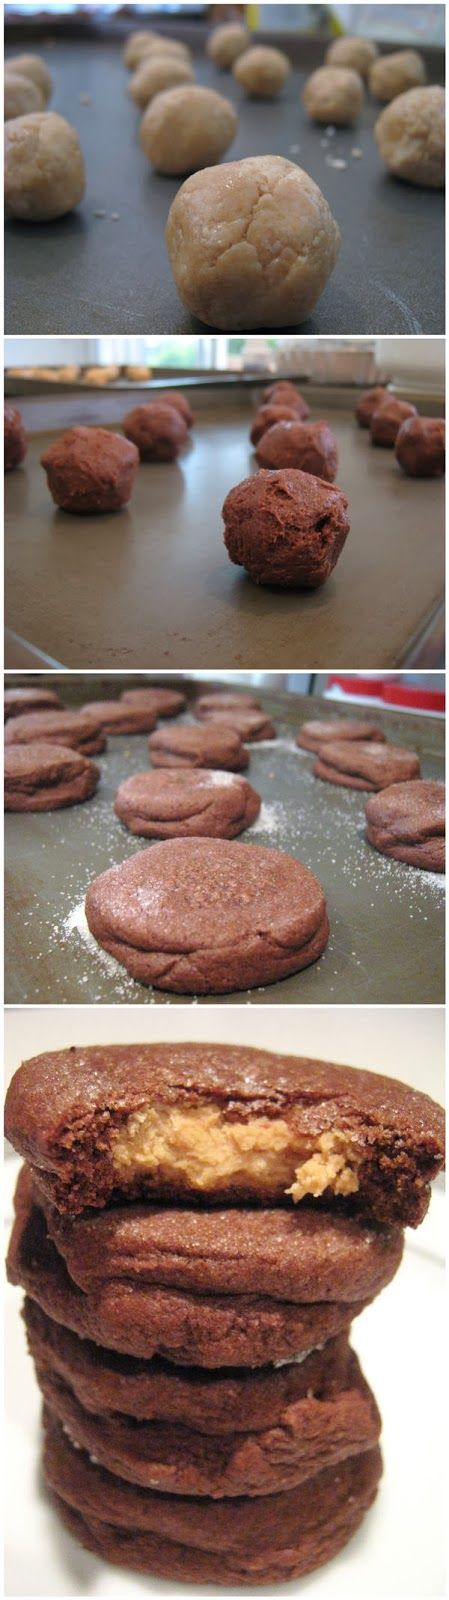 Chocolate Peanut Butter Surprise Cookies | Cooking ideas 2014 | Pinte ...